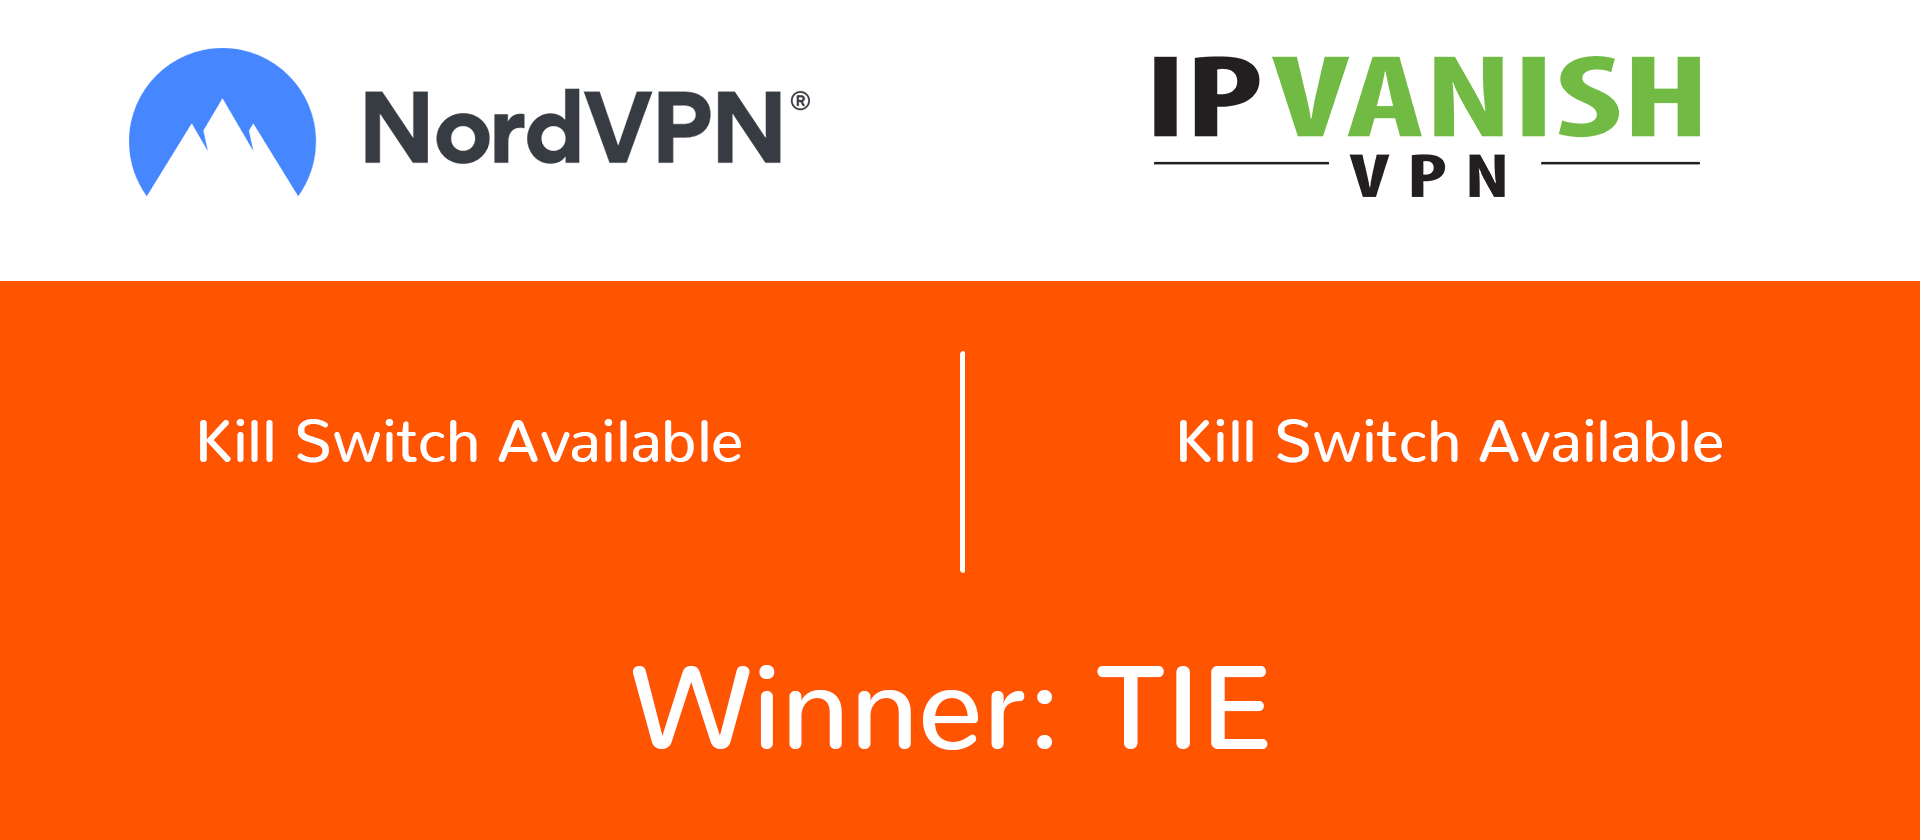 both VPNs offer kill switch